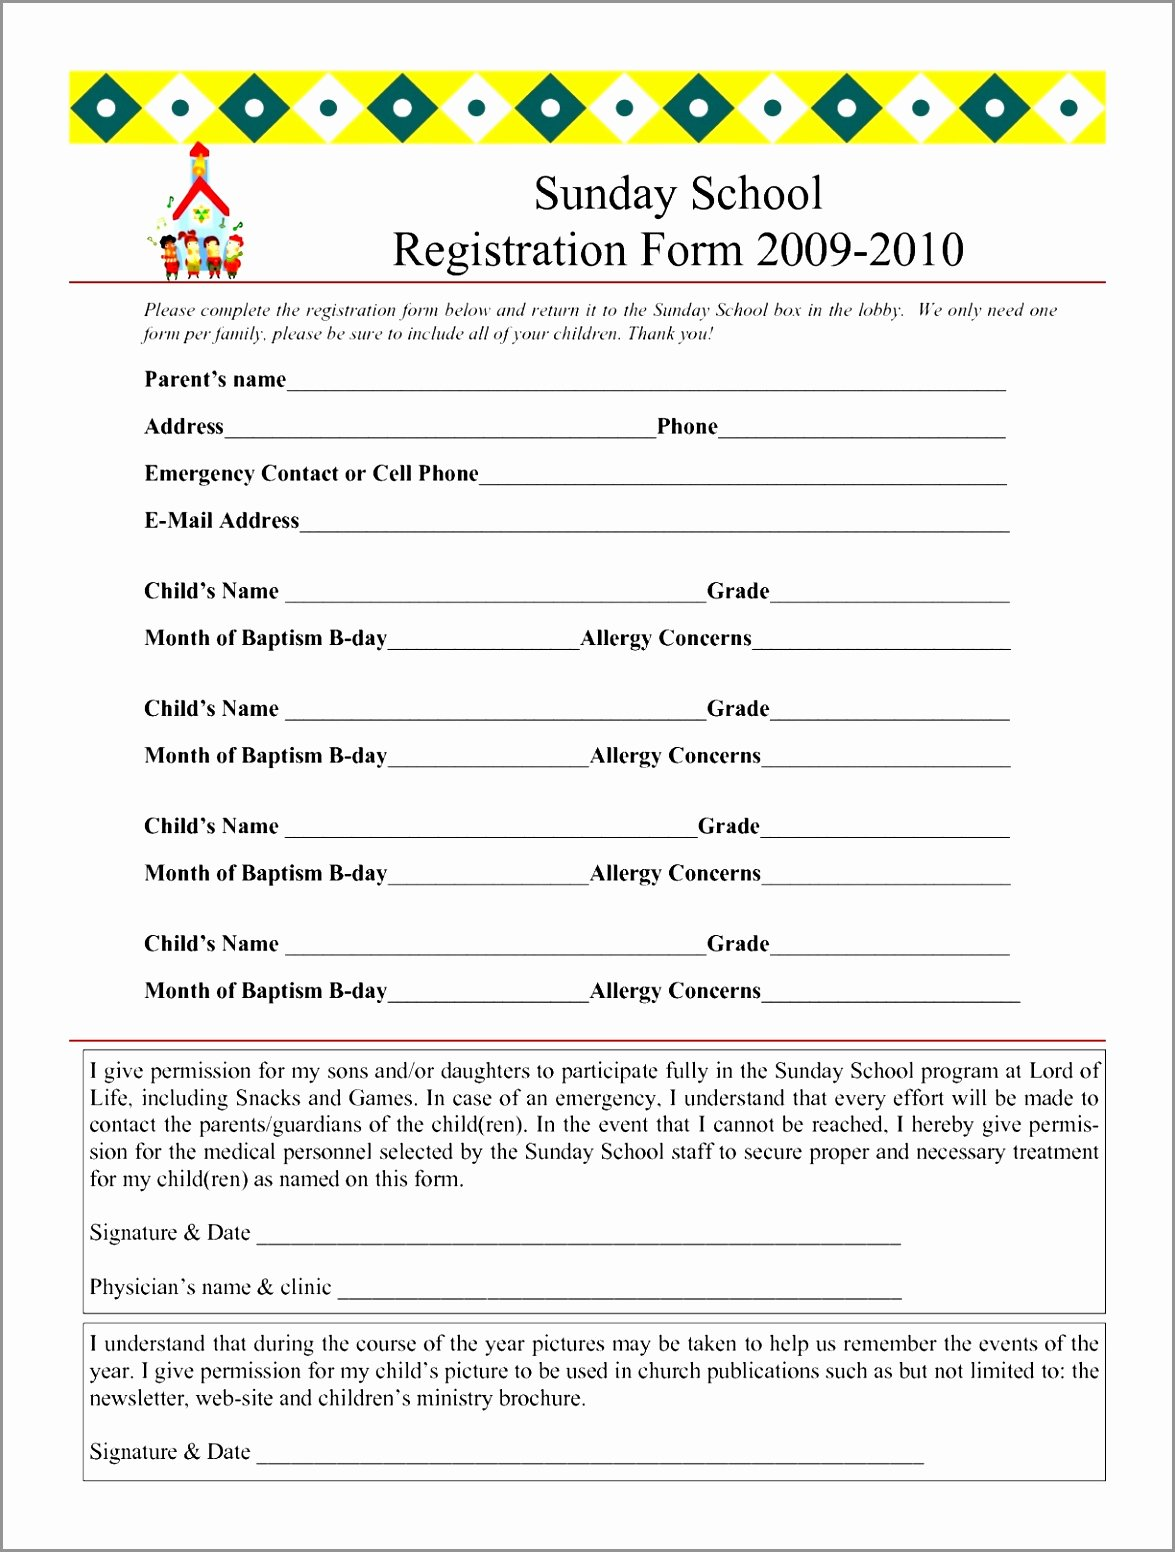 Sample Applications forms Free School Application form